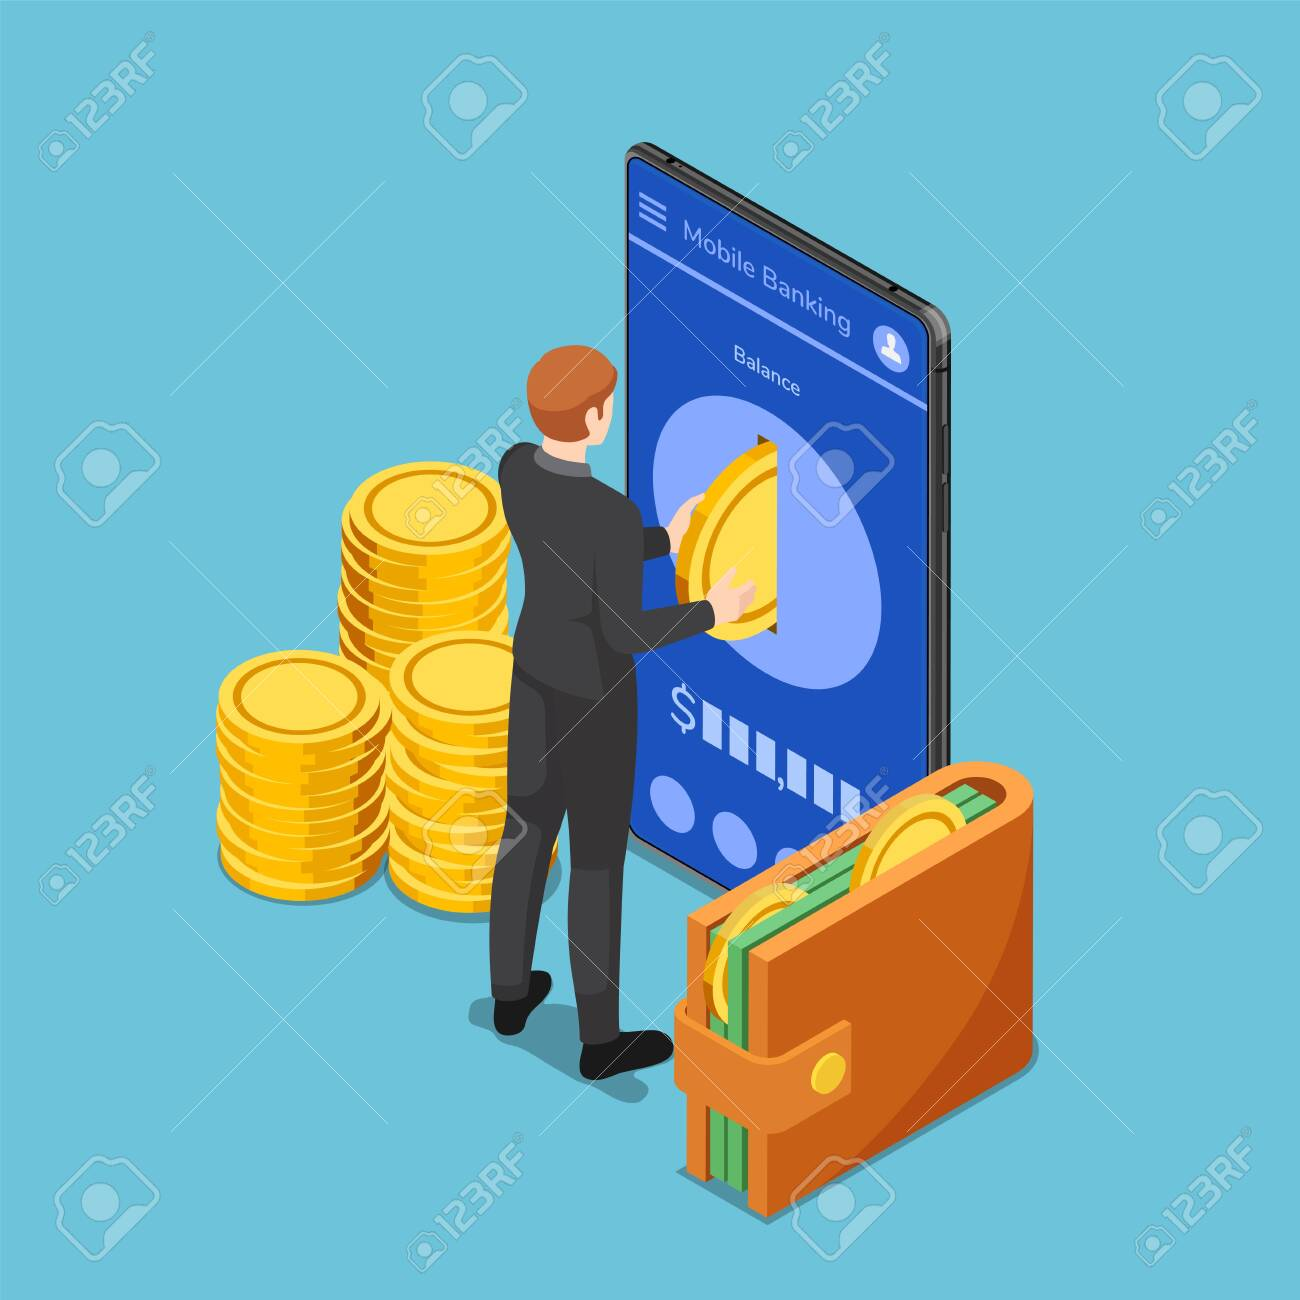 Flat 3d isometric businessman put gold coin into smartphone. Mobile banking concept. - 136041828